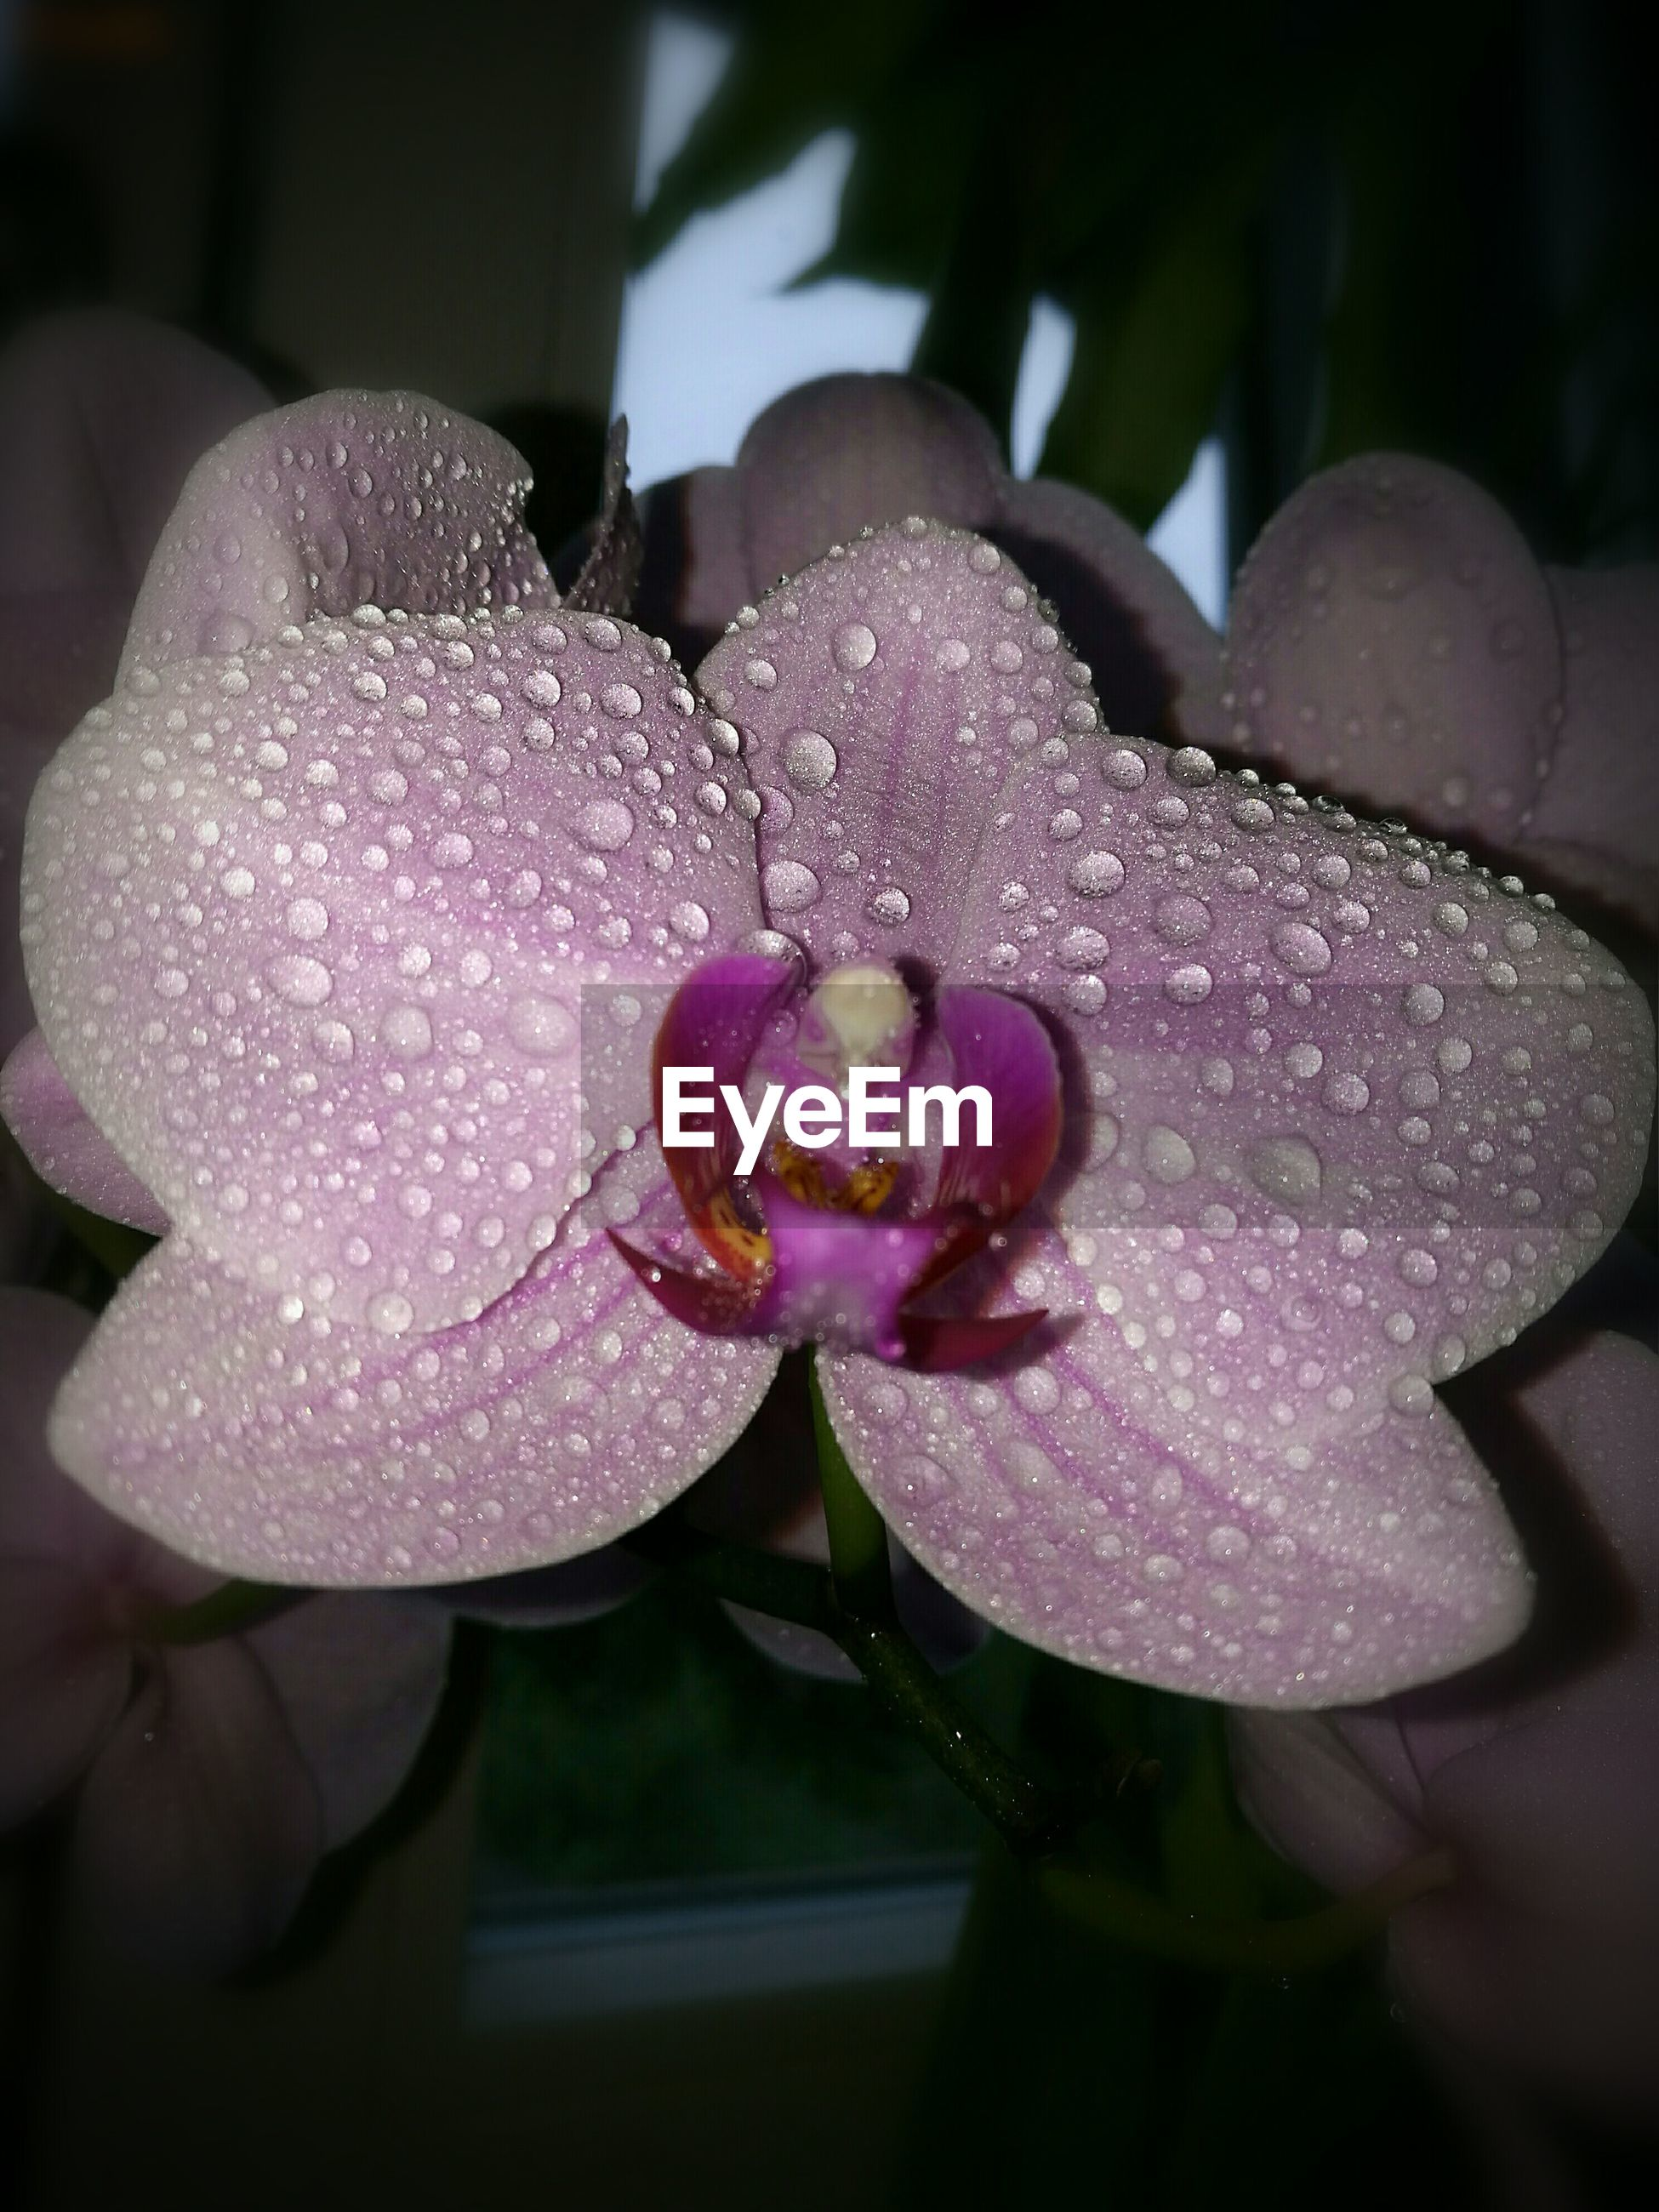 flower, fragility, freshness, petal, water, drop, growth, wet, flower head, close-up, in bloom, beauty in nature, pink color, season, springtime, nature, blossom, dew, single flower, botany, rain, selective focus, orchid, extreme close-up, macro, plant, droplet, soft focus, softness, vibrant color, water drop, rose petals, focus on foreground, purity